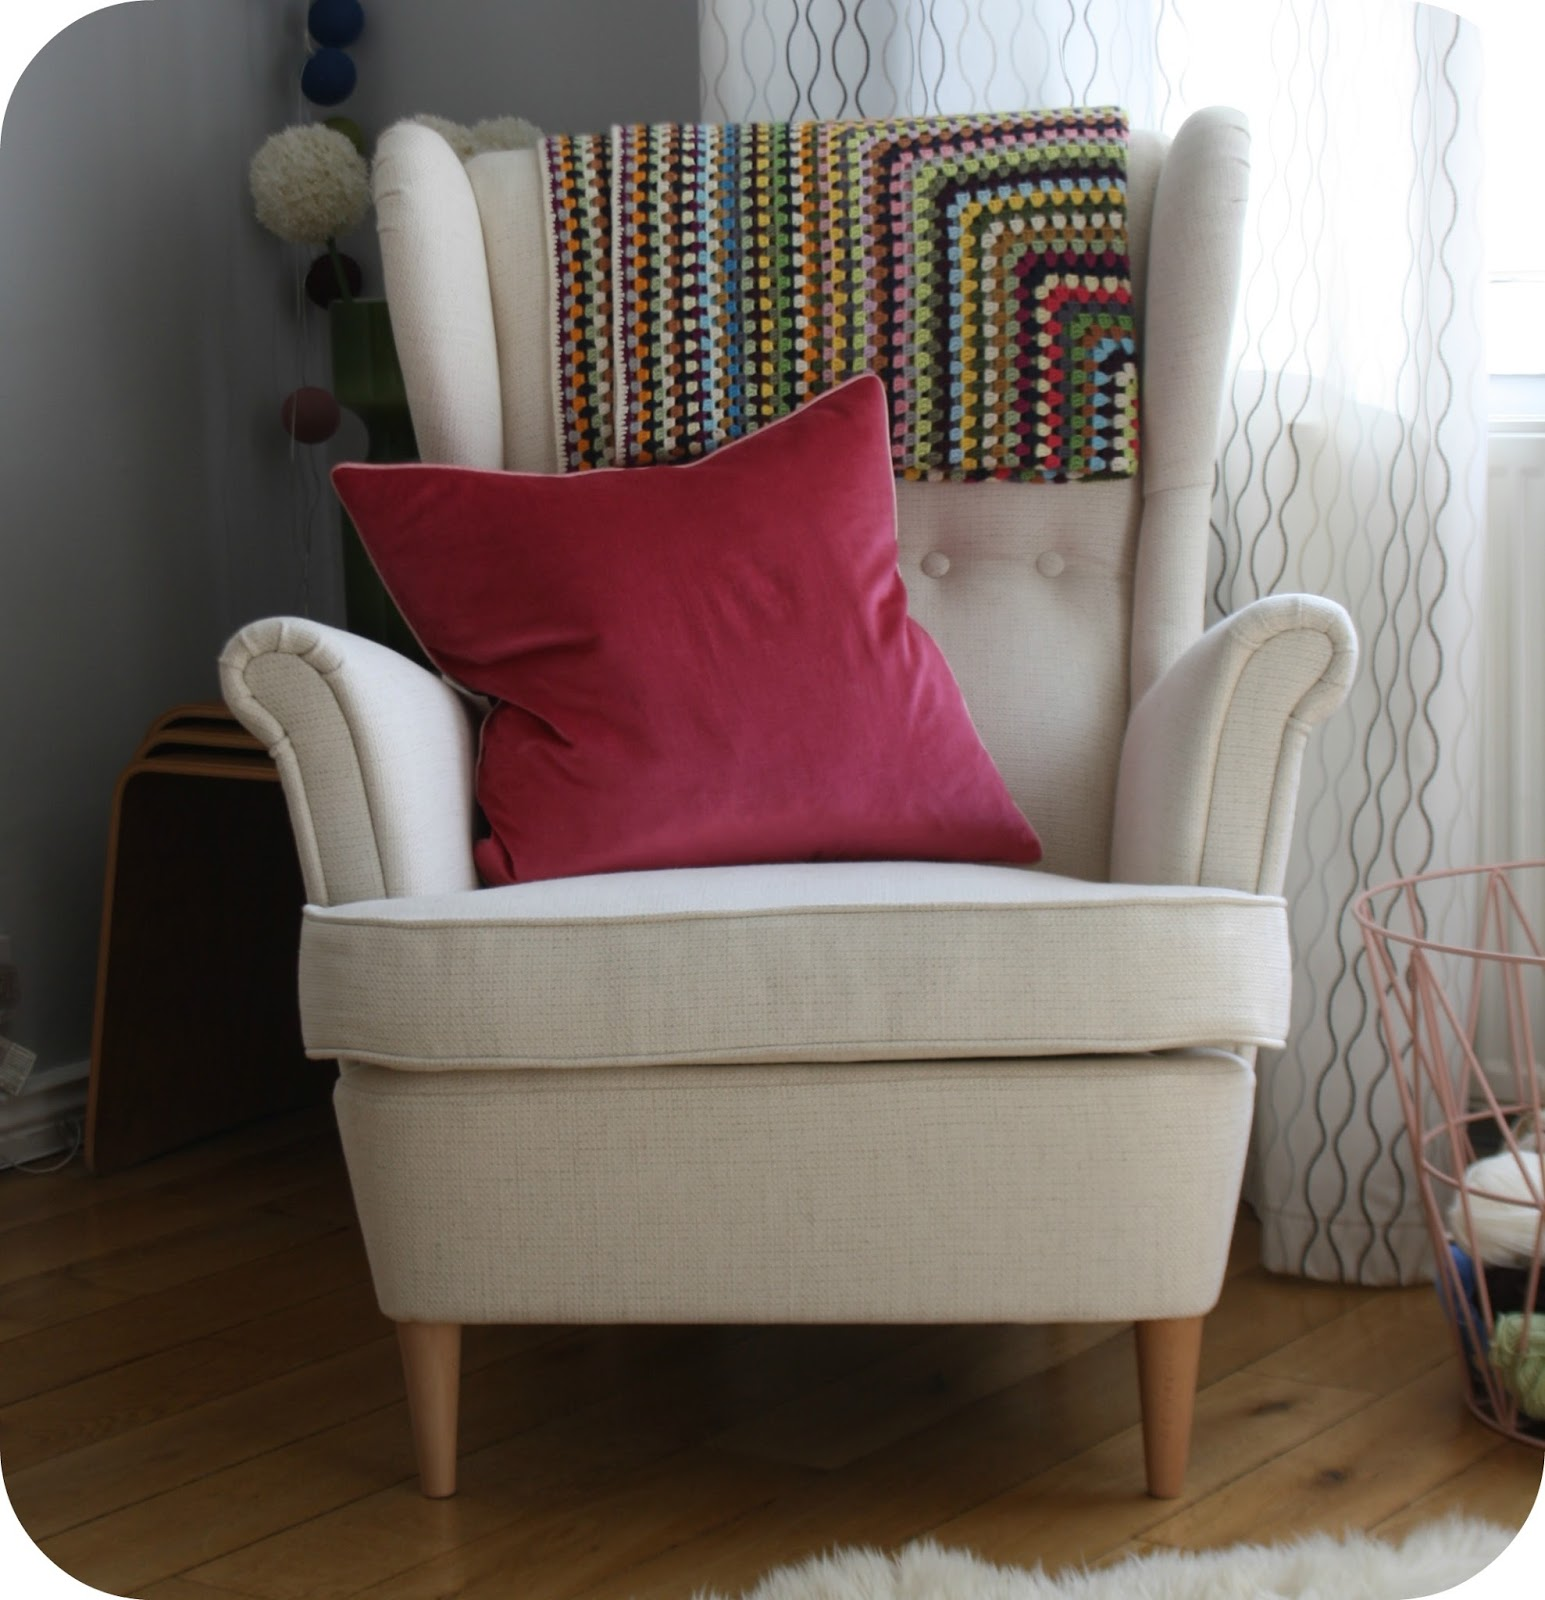 strandmon wing chair review guest office chairs tales from a happy house just right wednesday 12 march 2014